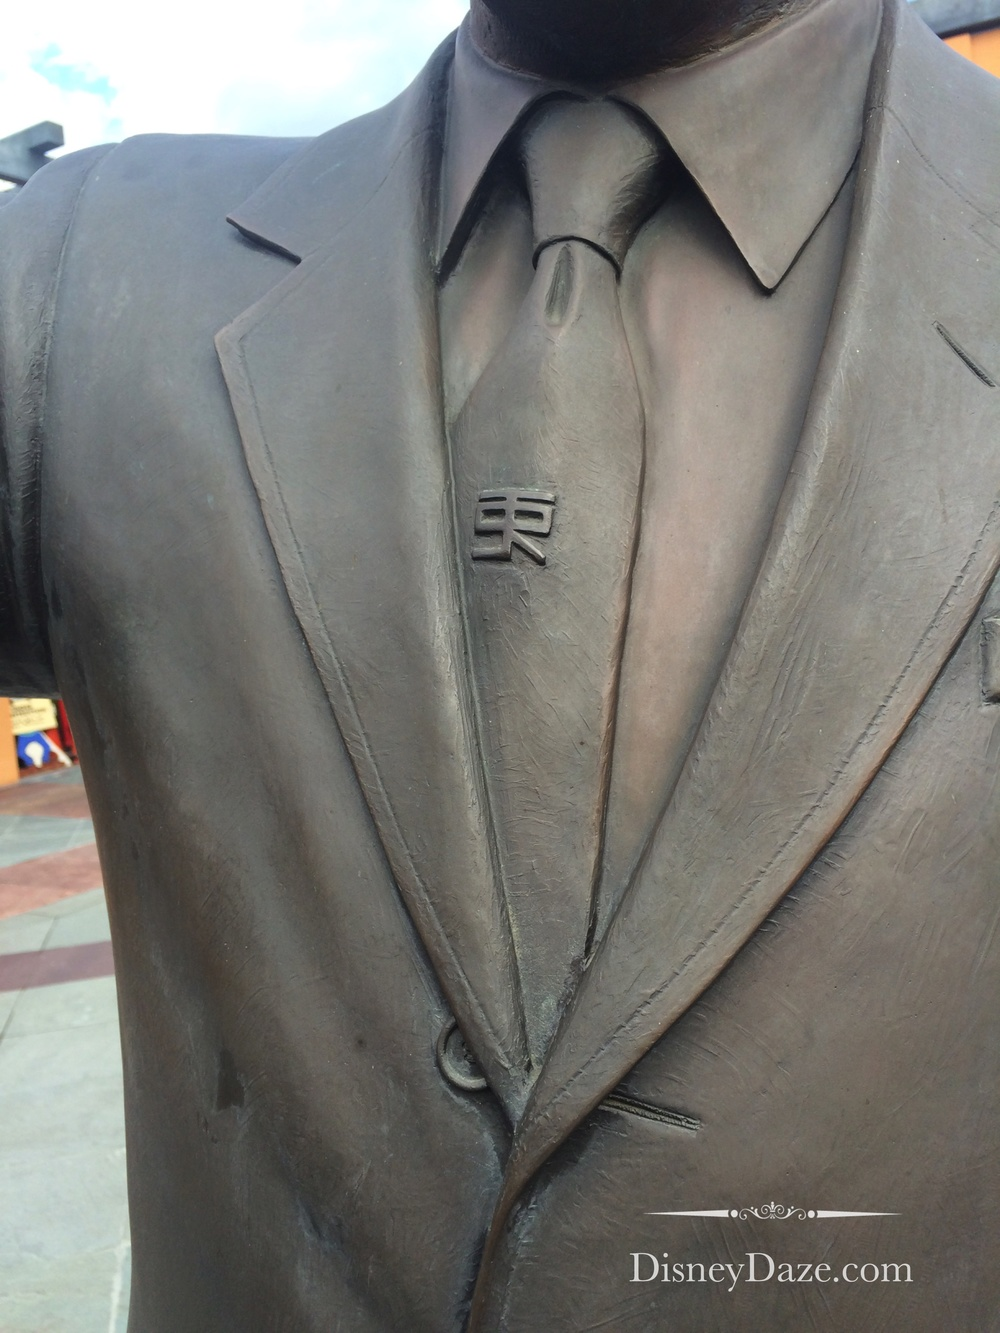 Do you know what the symbol on Walt's tie is for?